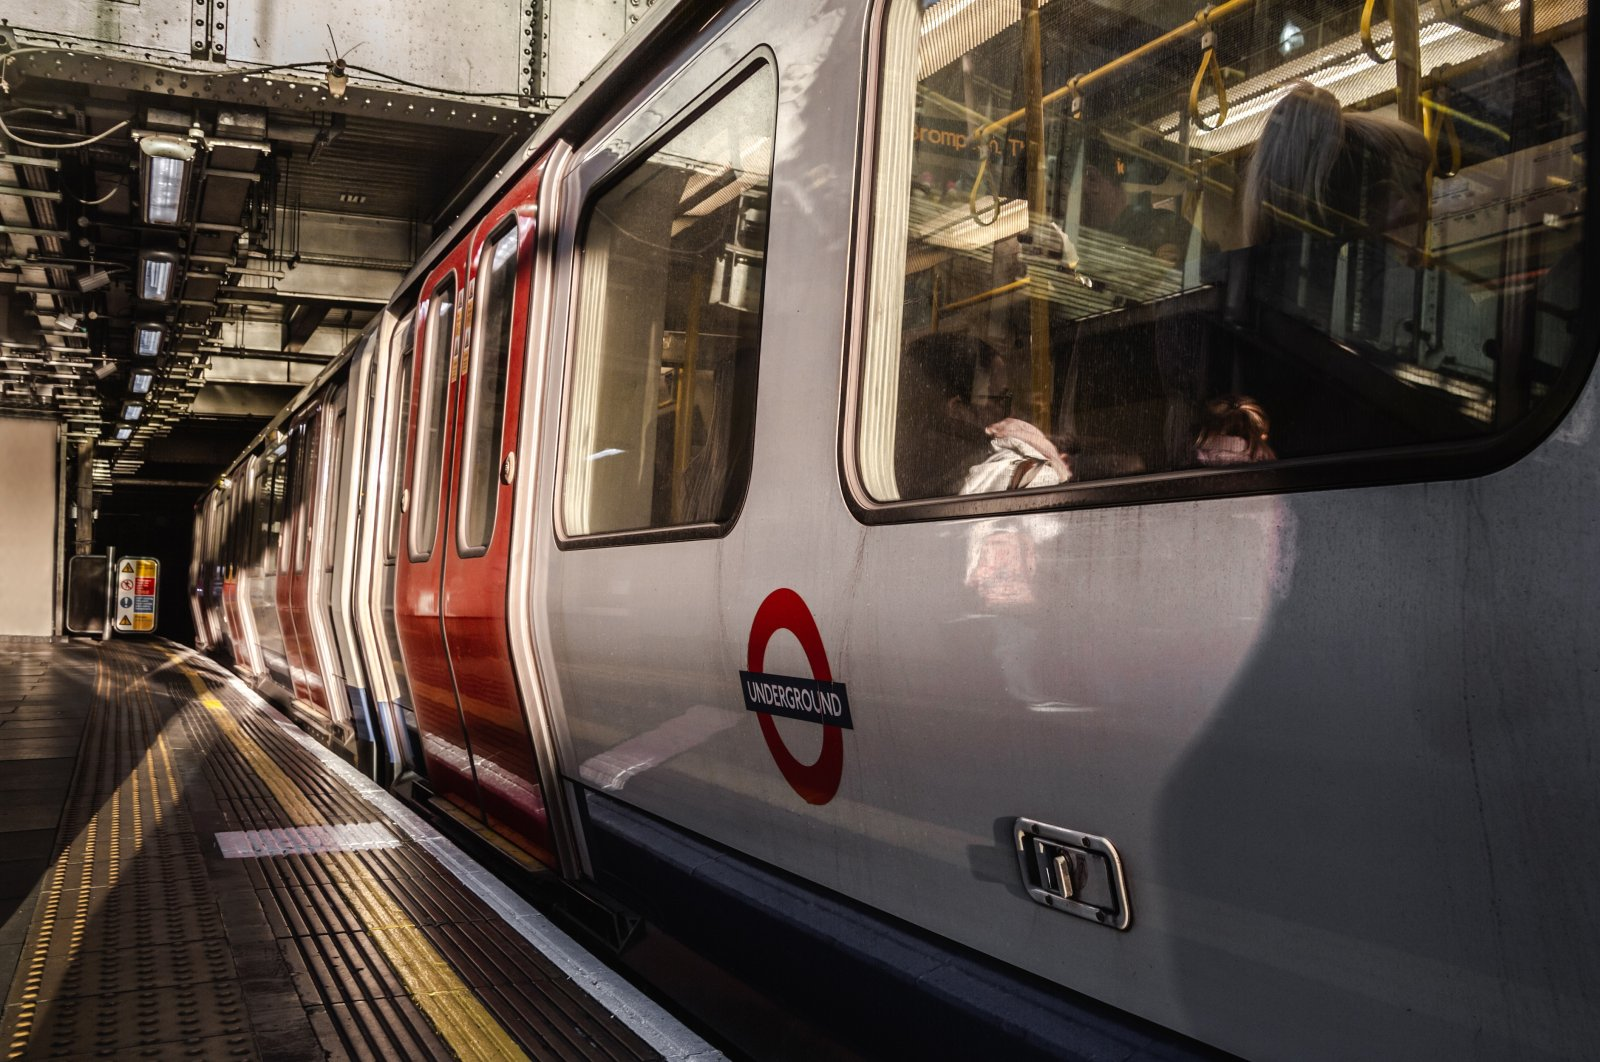 An underground sub-surface train at a Tube station in  London, Jan. 16, 2019. (Shutterstock Photo)